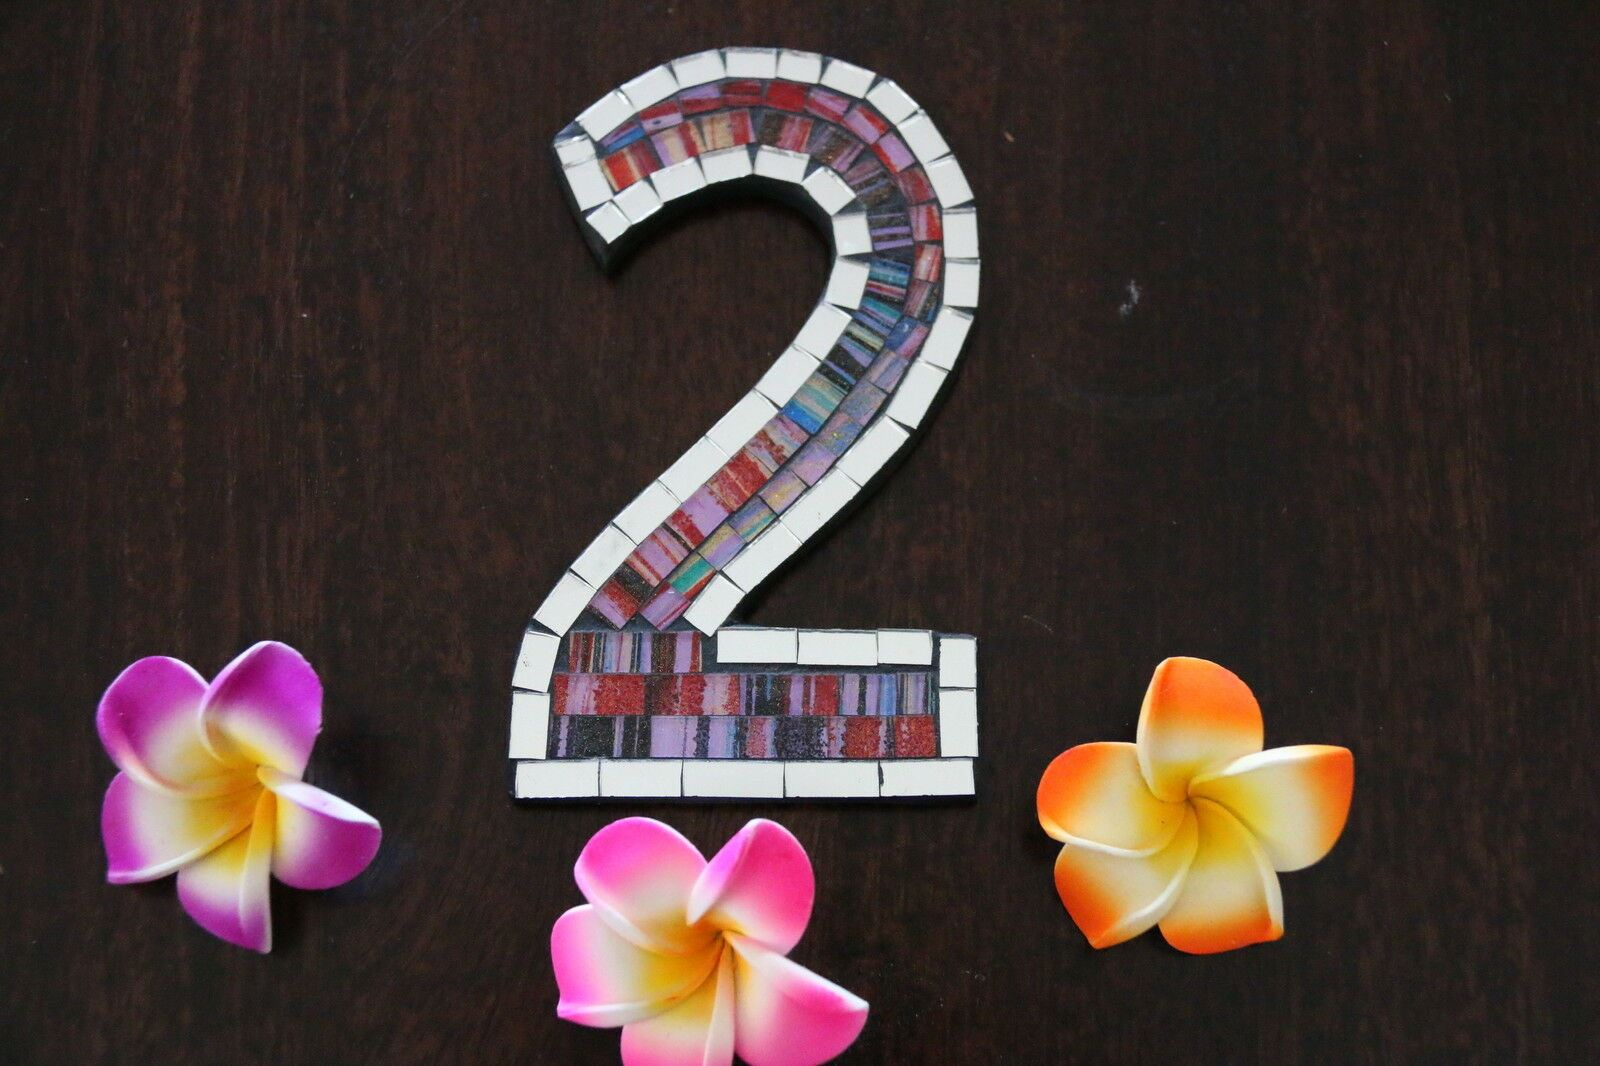 NEW Balinese Mosaic House Number - Choose from 1-0 - Mosaic House or Unit Number